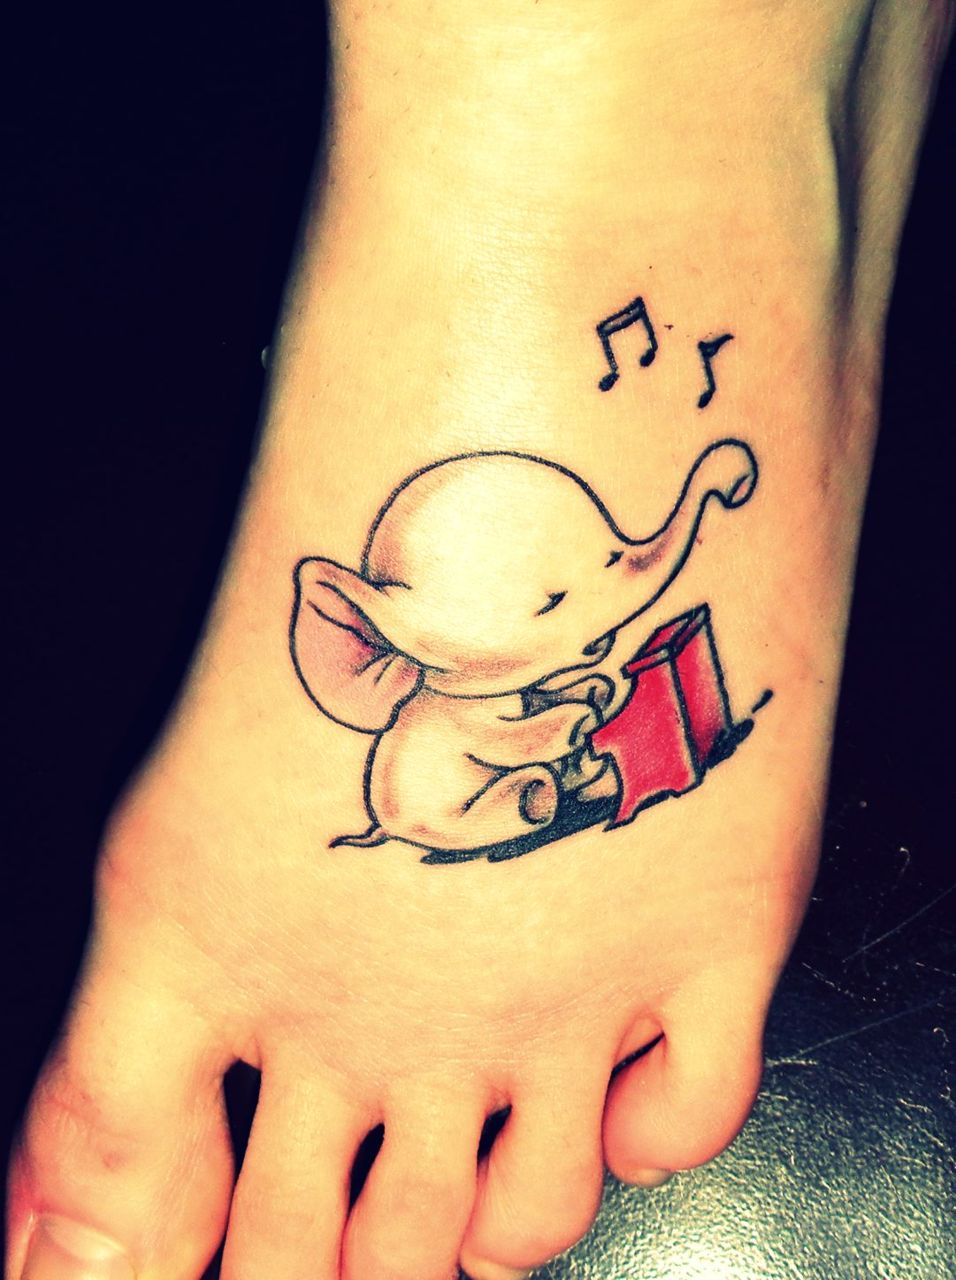 Piano Player Elephant Tattoo On Foot